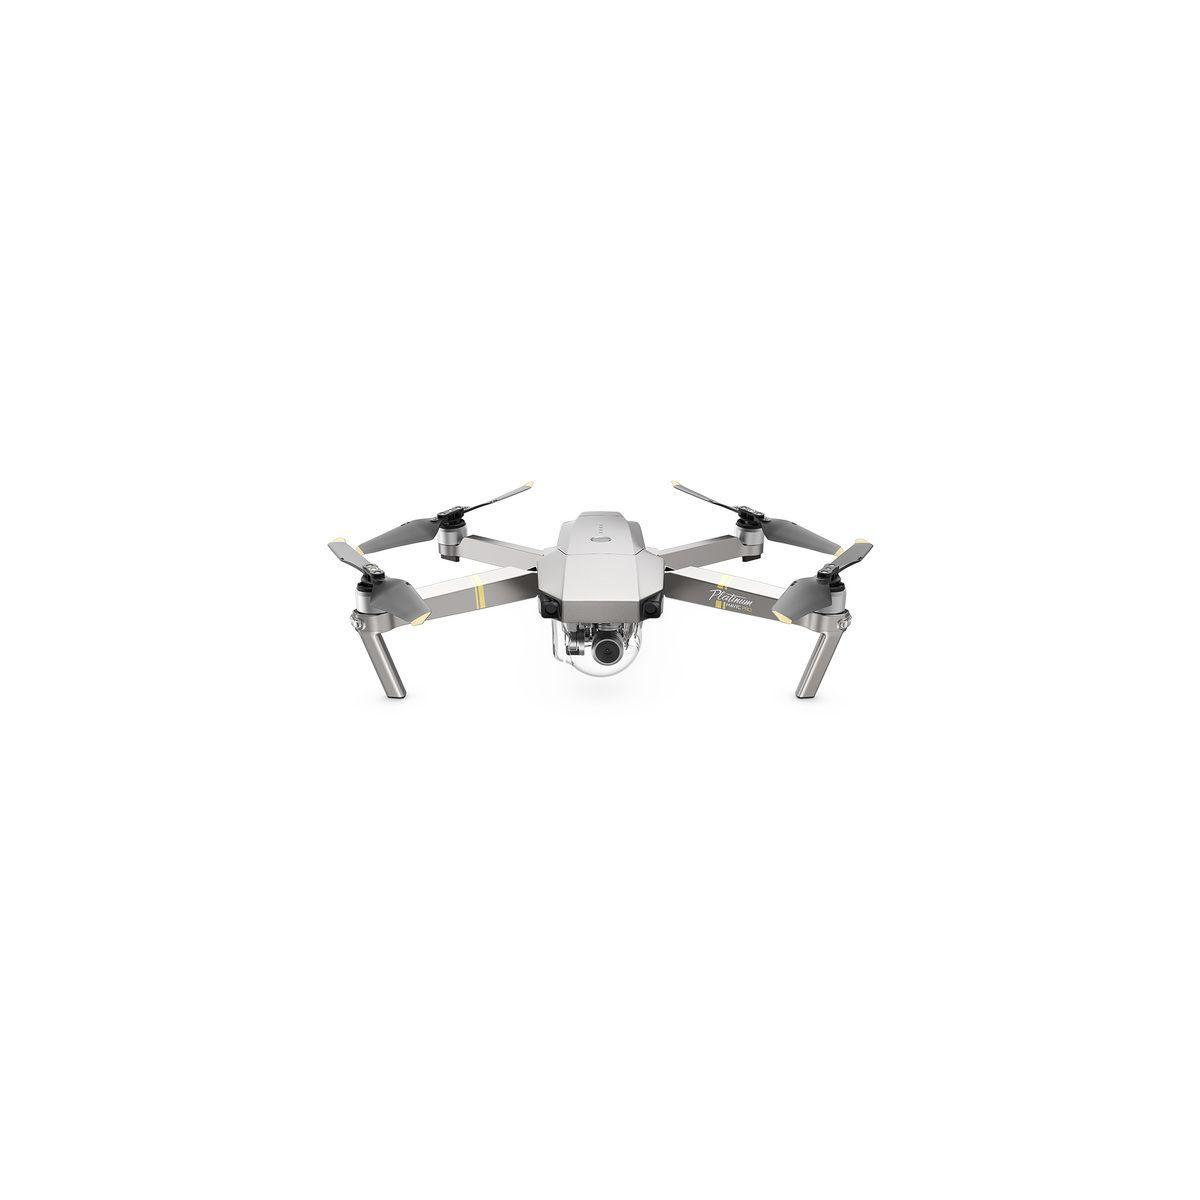 Drone dji mavic pro platinium fly more combo - 2% de remise imm�diate avec le code : deal2 (photo)